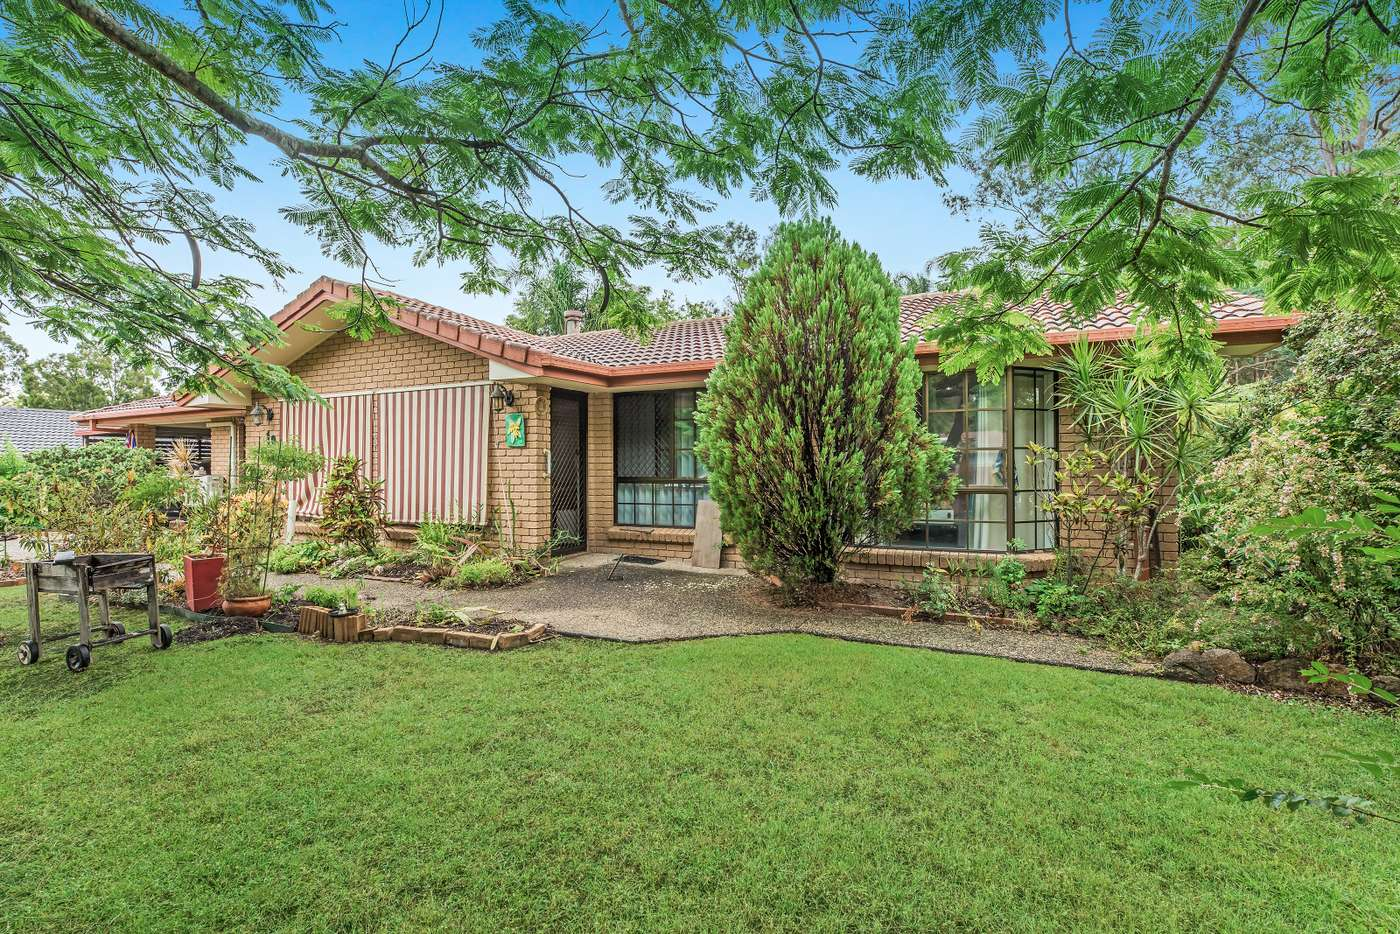 Main view of Homely house listing, 19 Carinya Crescent, Karana Downs QLD 4306